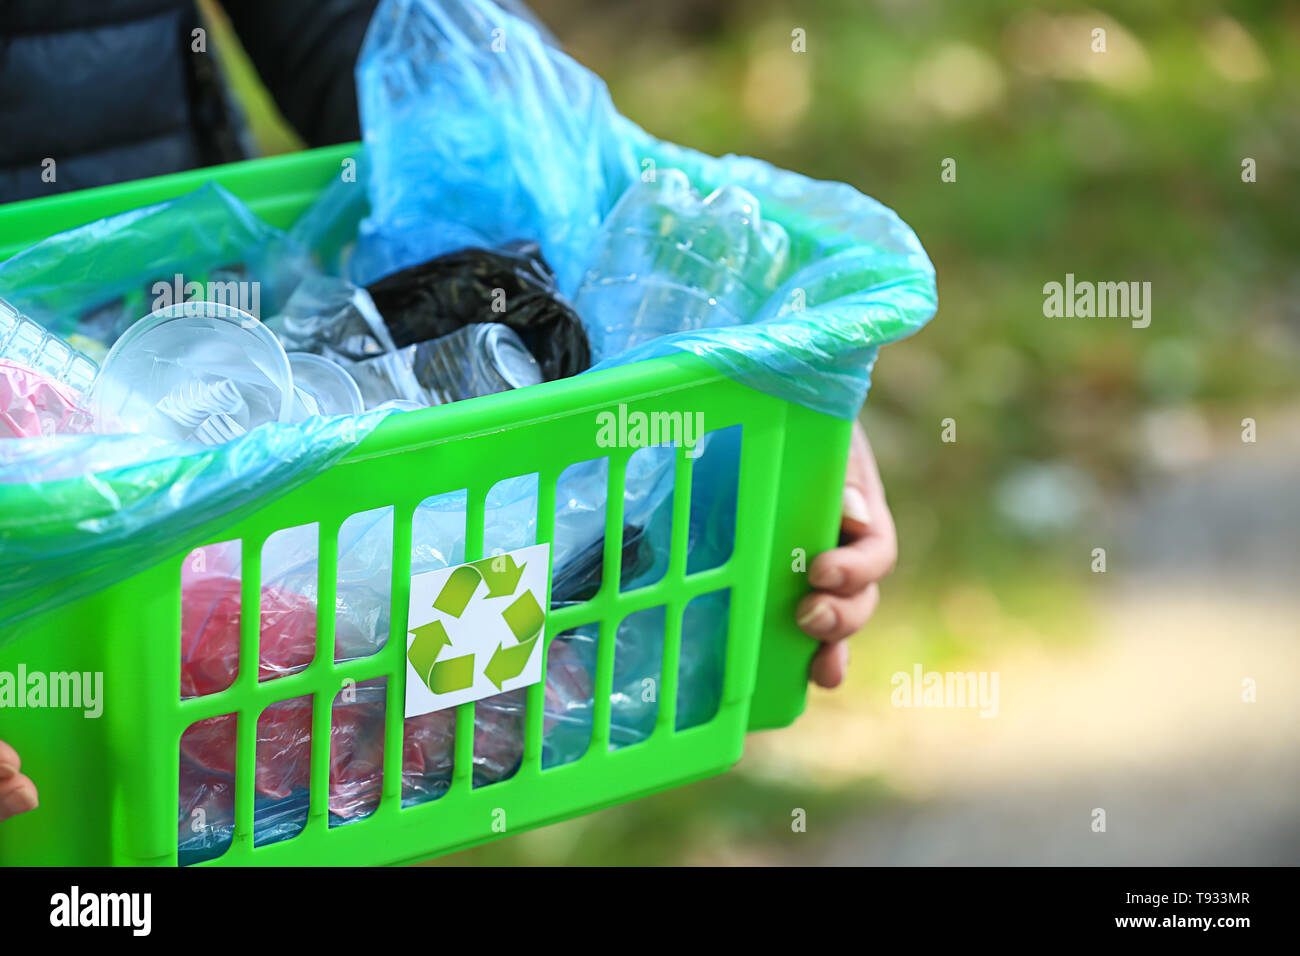 Woman holding box with trash outdoors - Stock Image